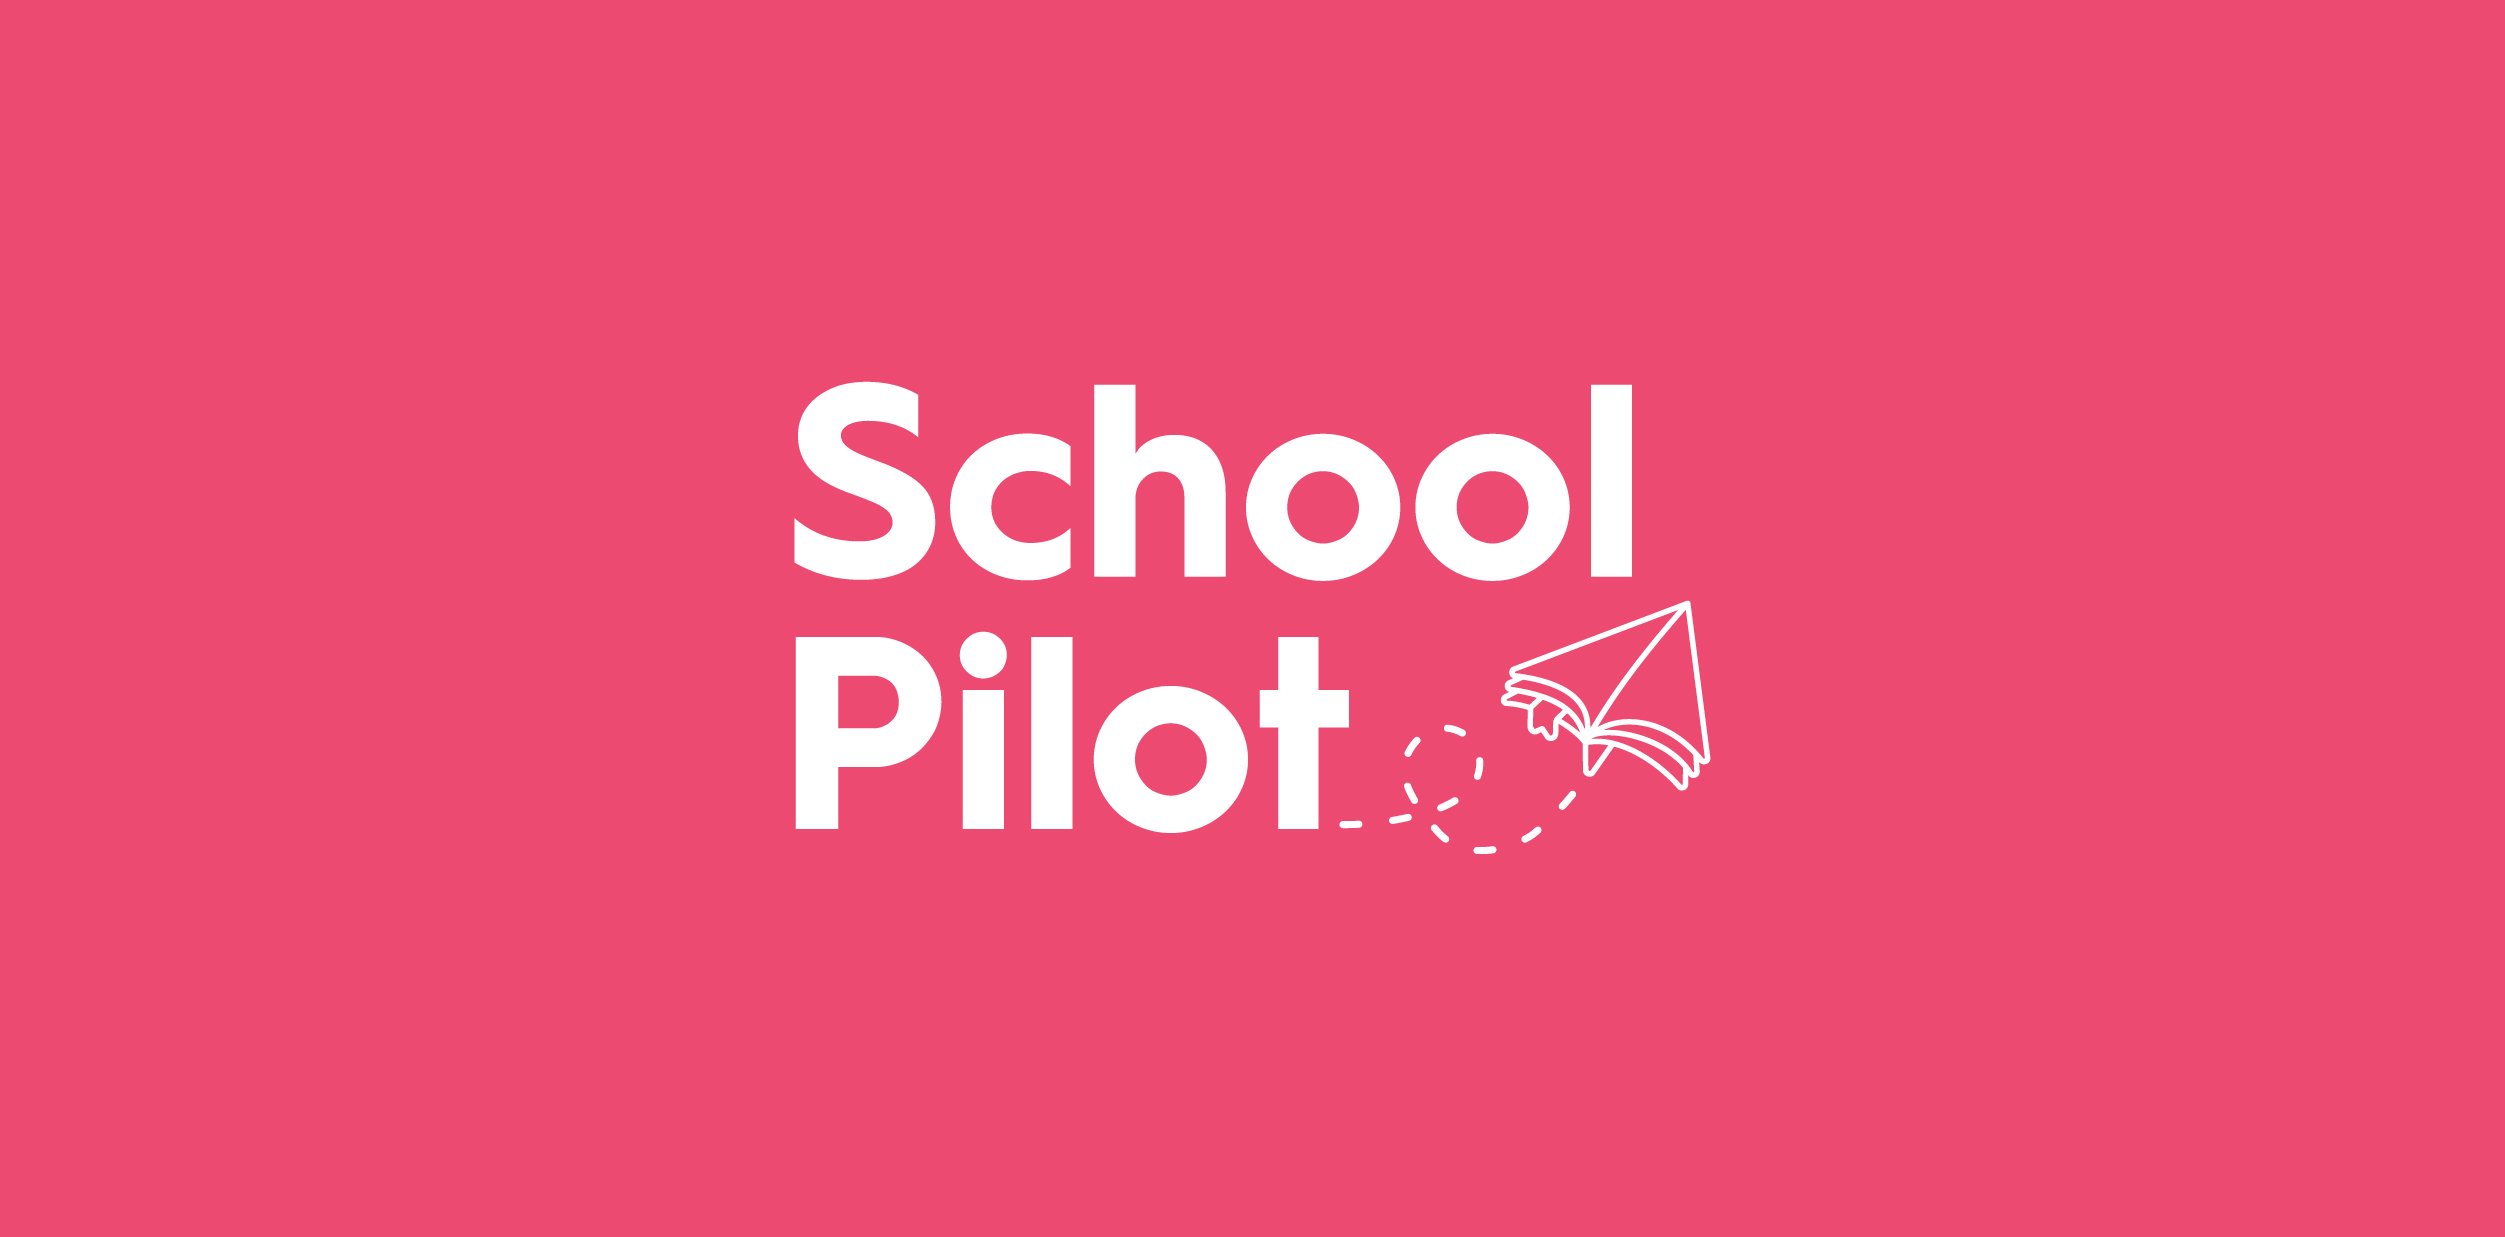 School Pilot Final Header Image